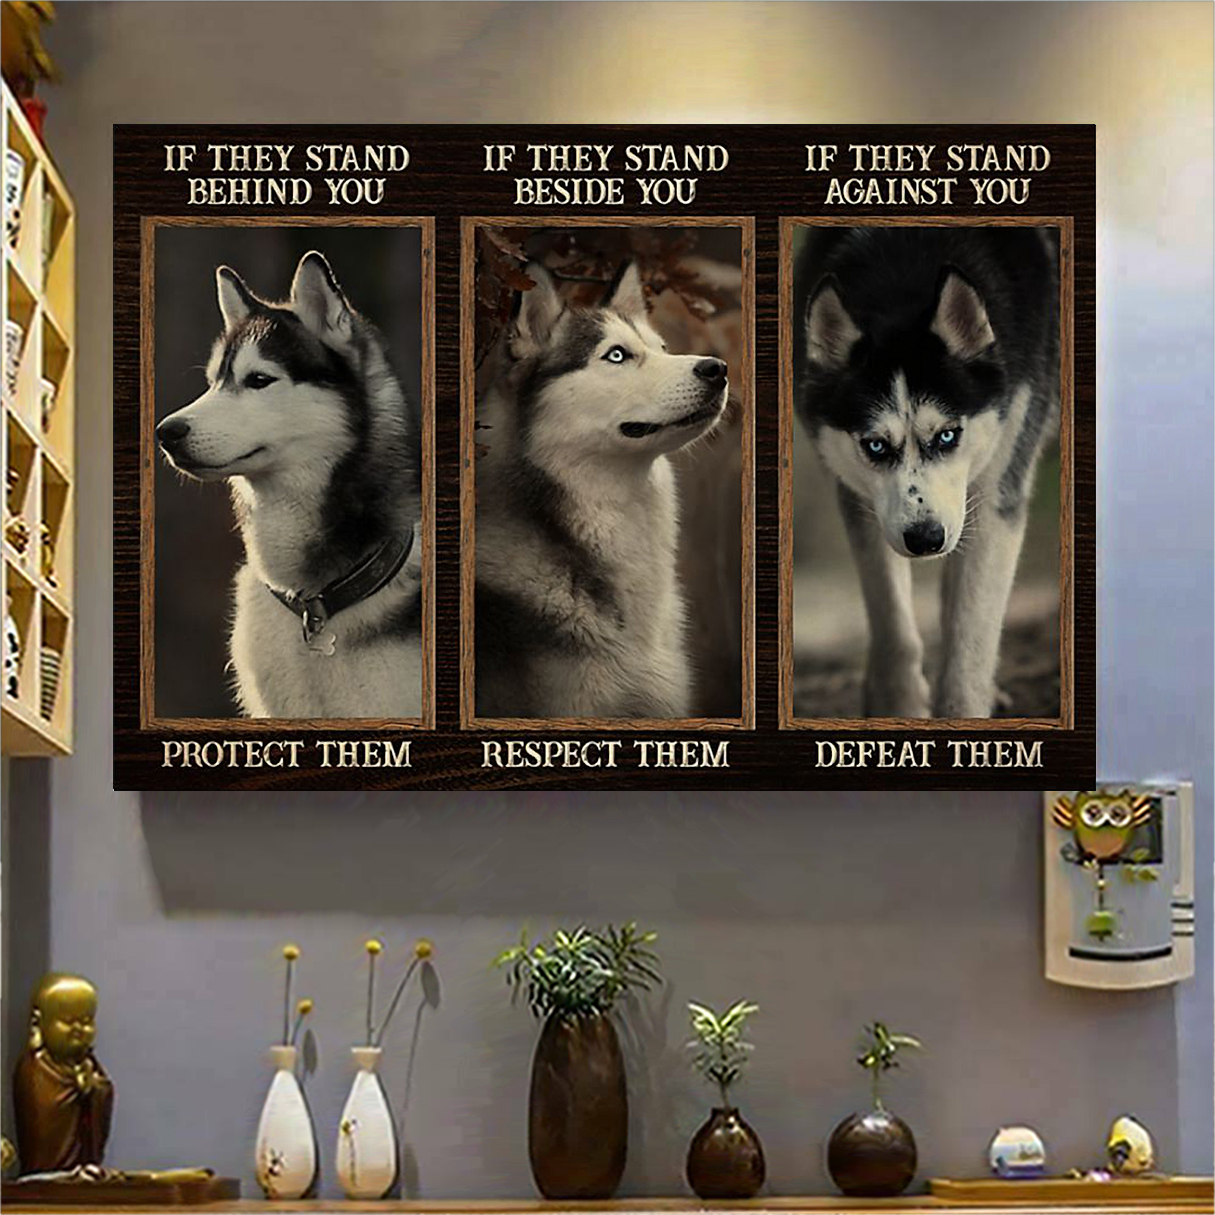 Husky if they stand behind you protect them poster A2